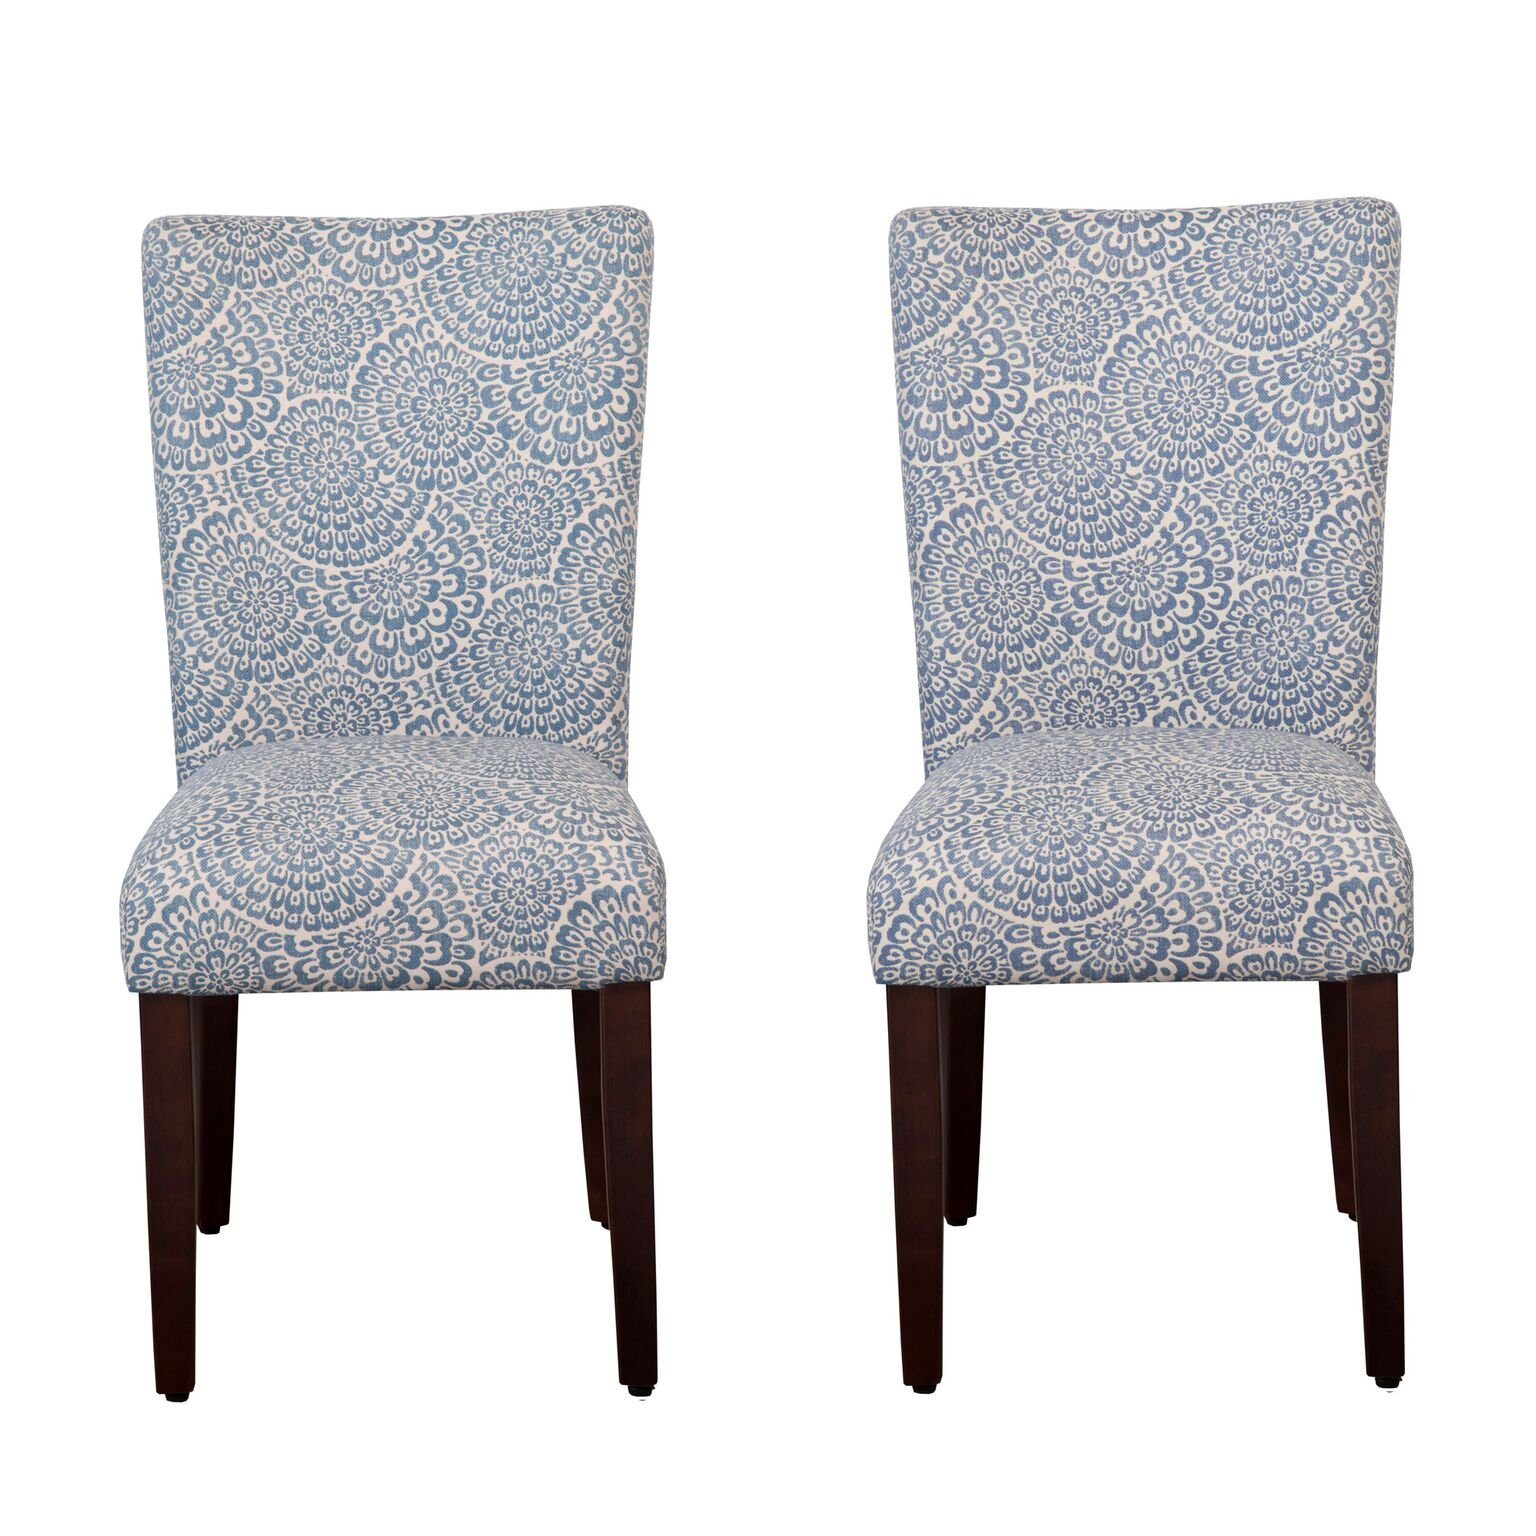 Kinfine K6805-F2059 Parsons Classic Dining Chair Room Tables, Set of 2, Navy and Floral